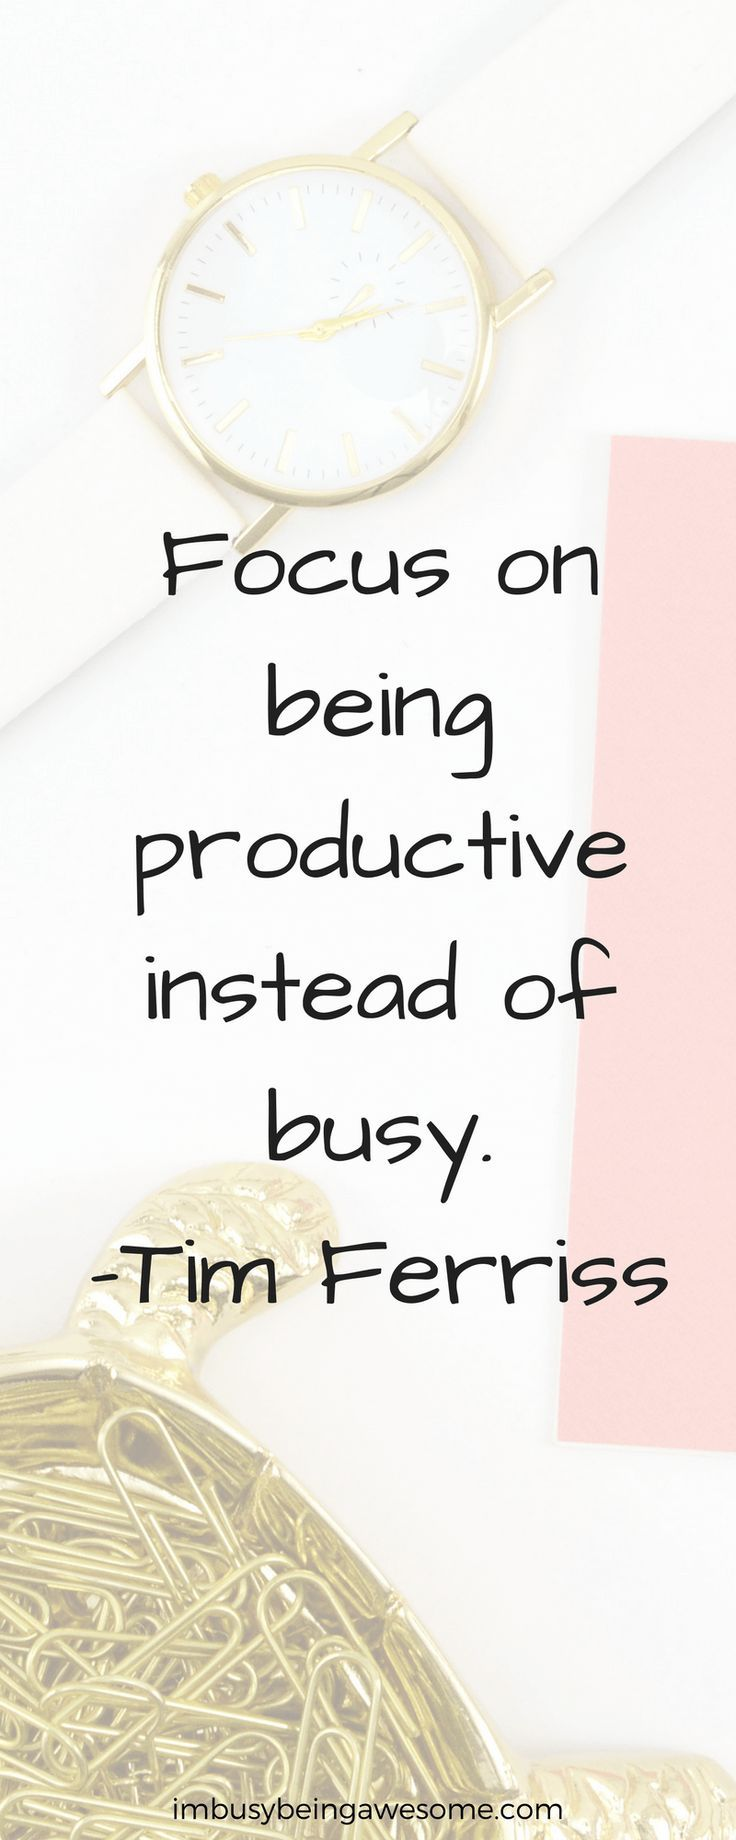 1000+ images about Positive Energy on Pinterest | Positive ... |Feeling Productive Quotes